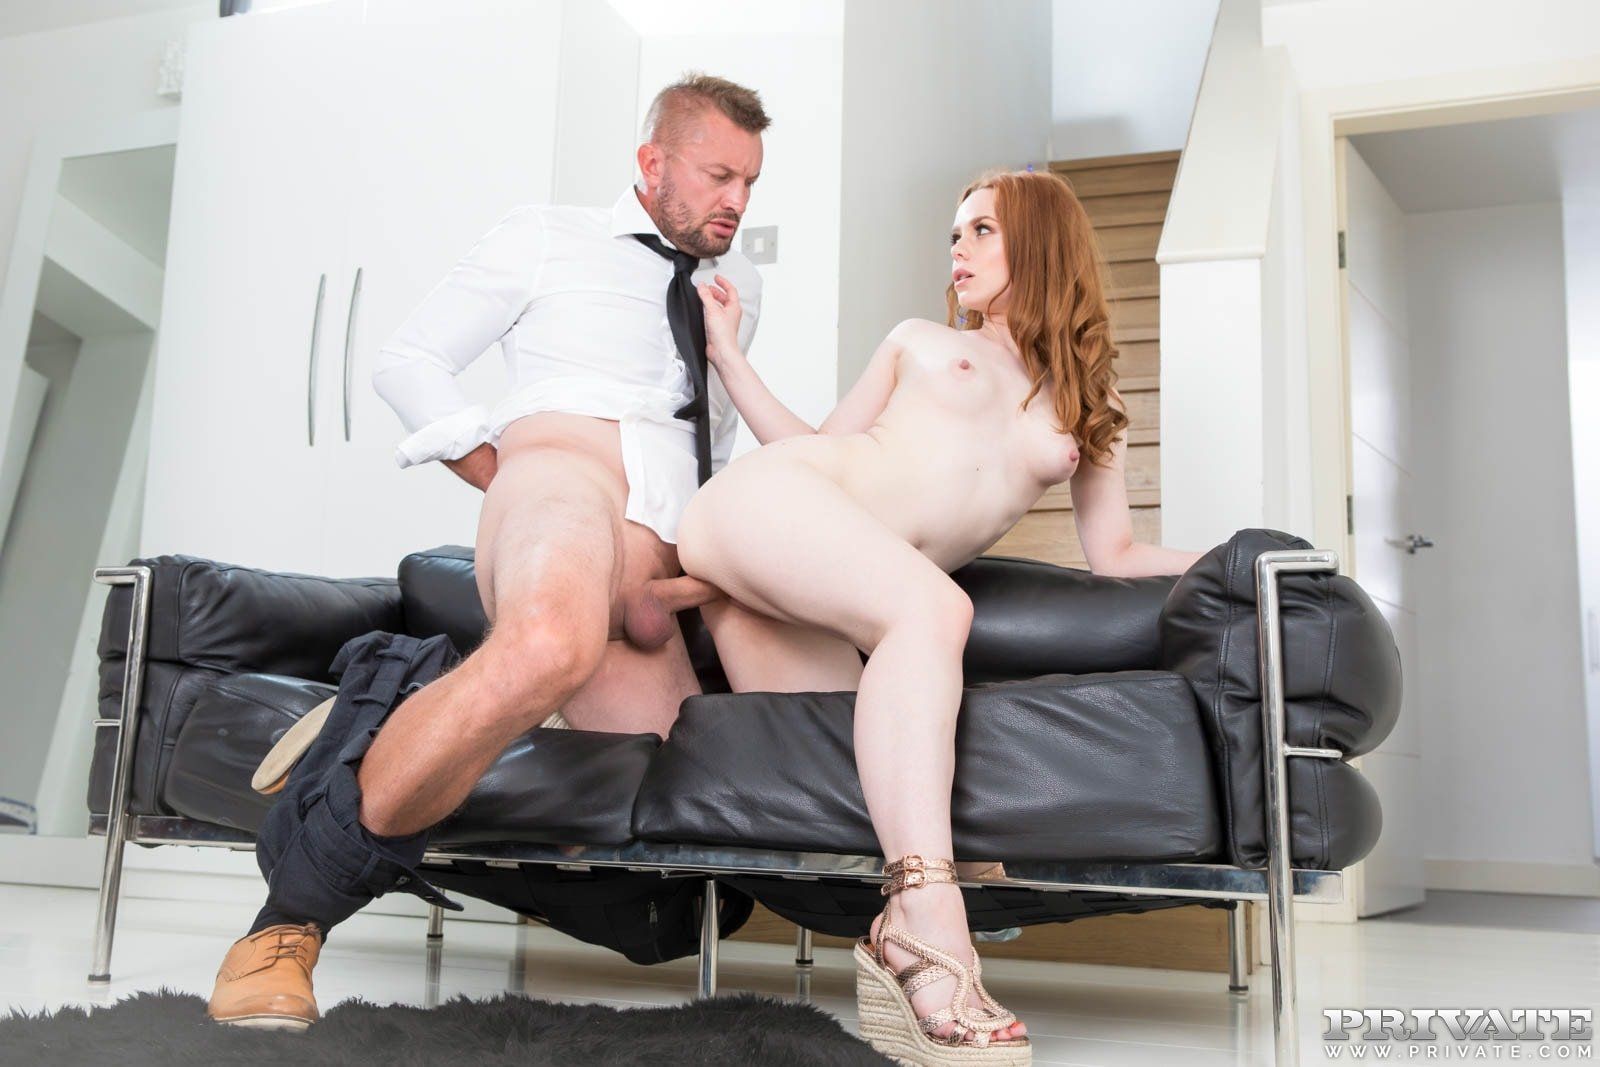 Muscle men free xxx movies received 387089115000295